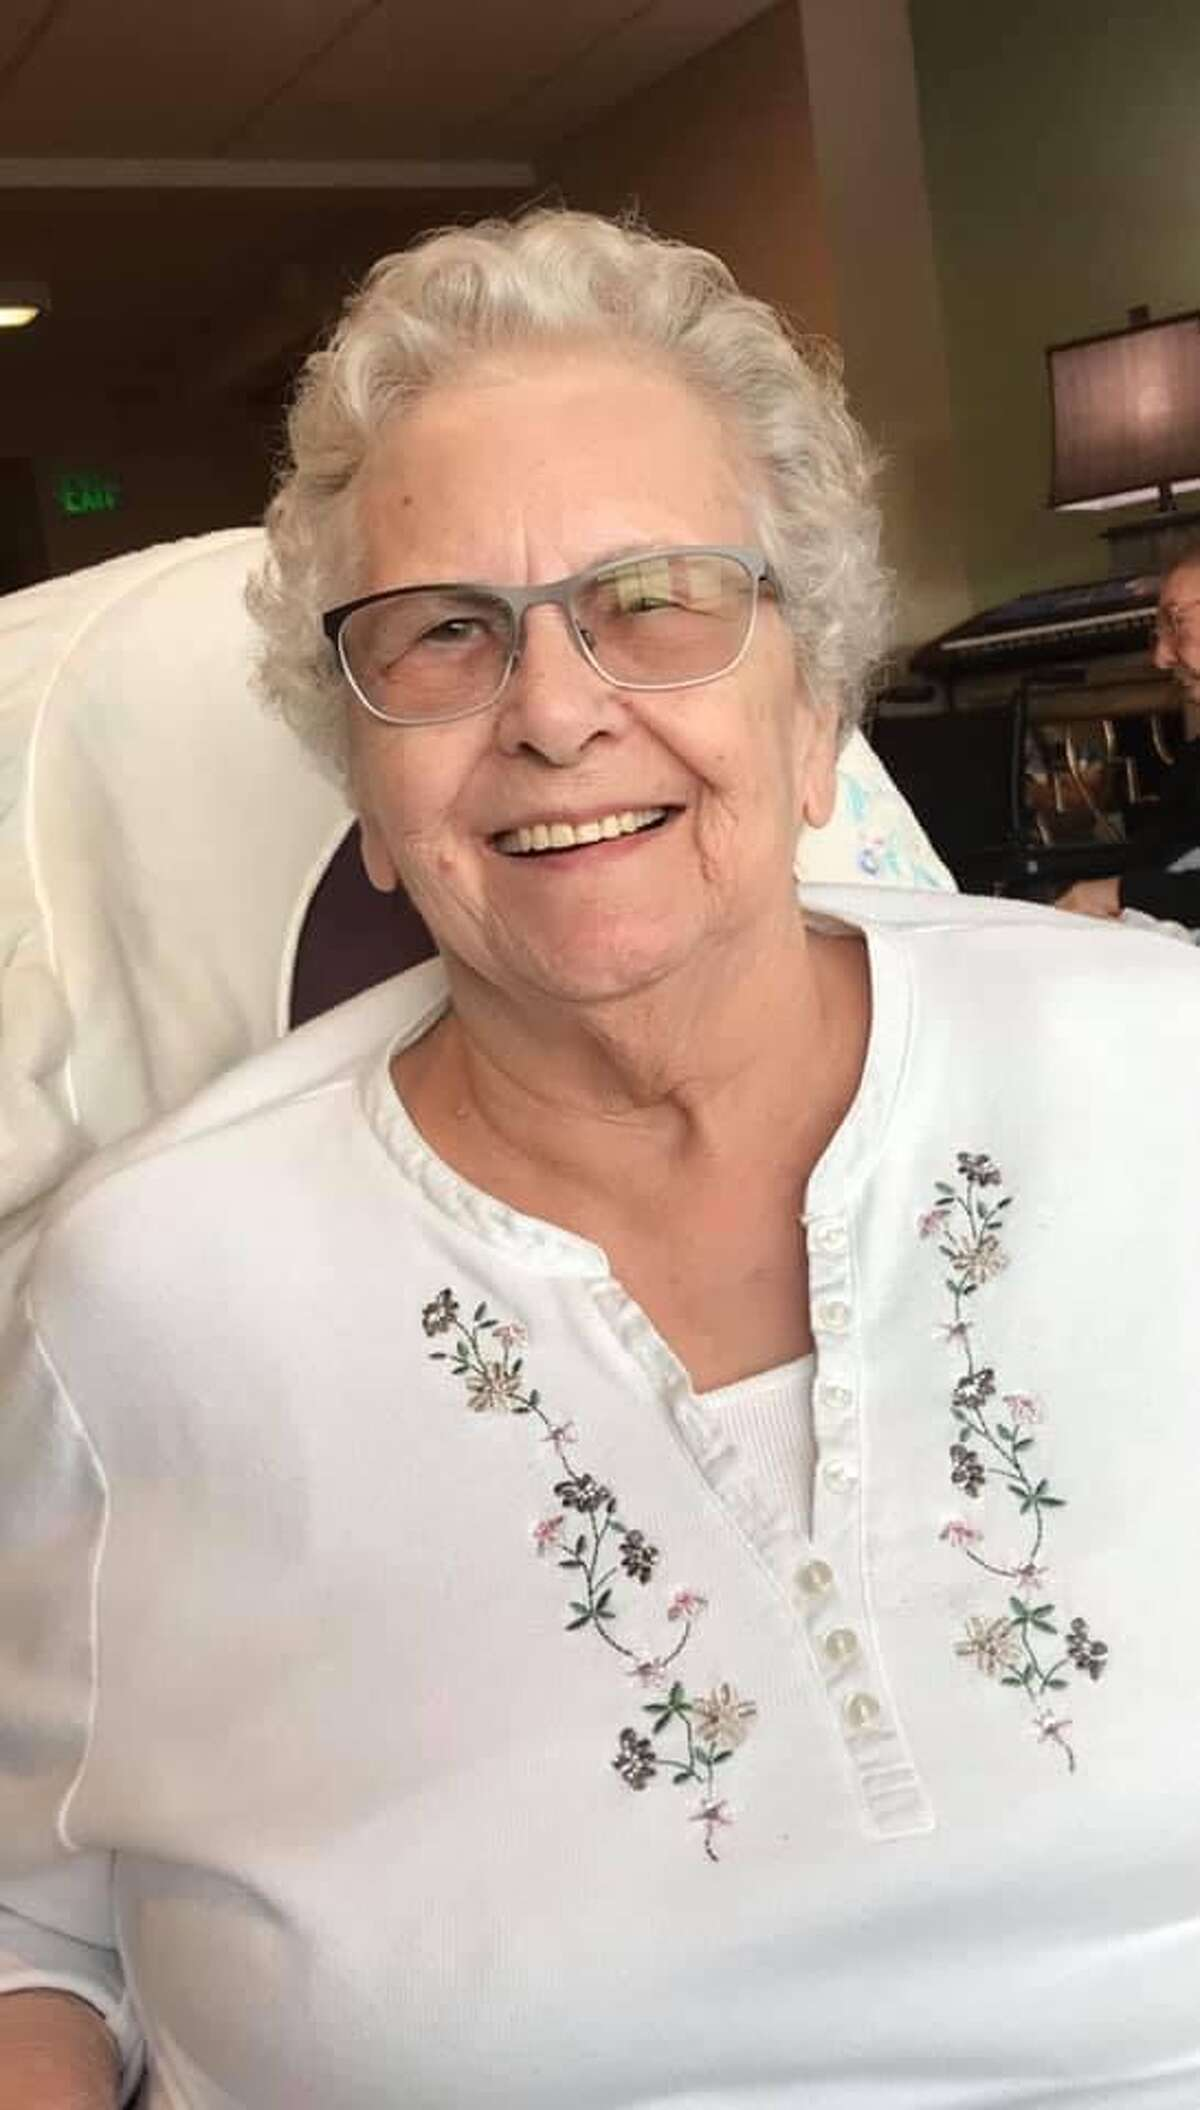 Frances Mealey died at Samaritan Hospital where she worked for 35 years. She was diagnosed on a Saturday and died the day after Thanksgiving.